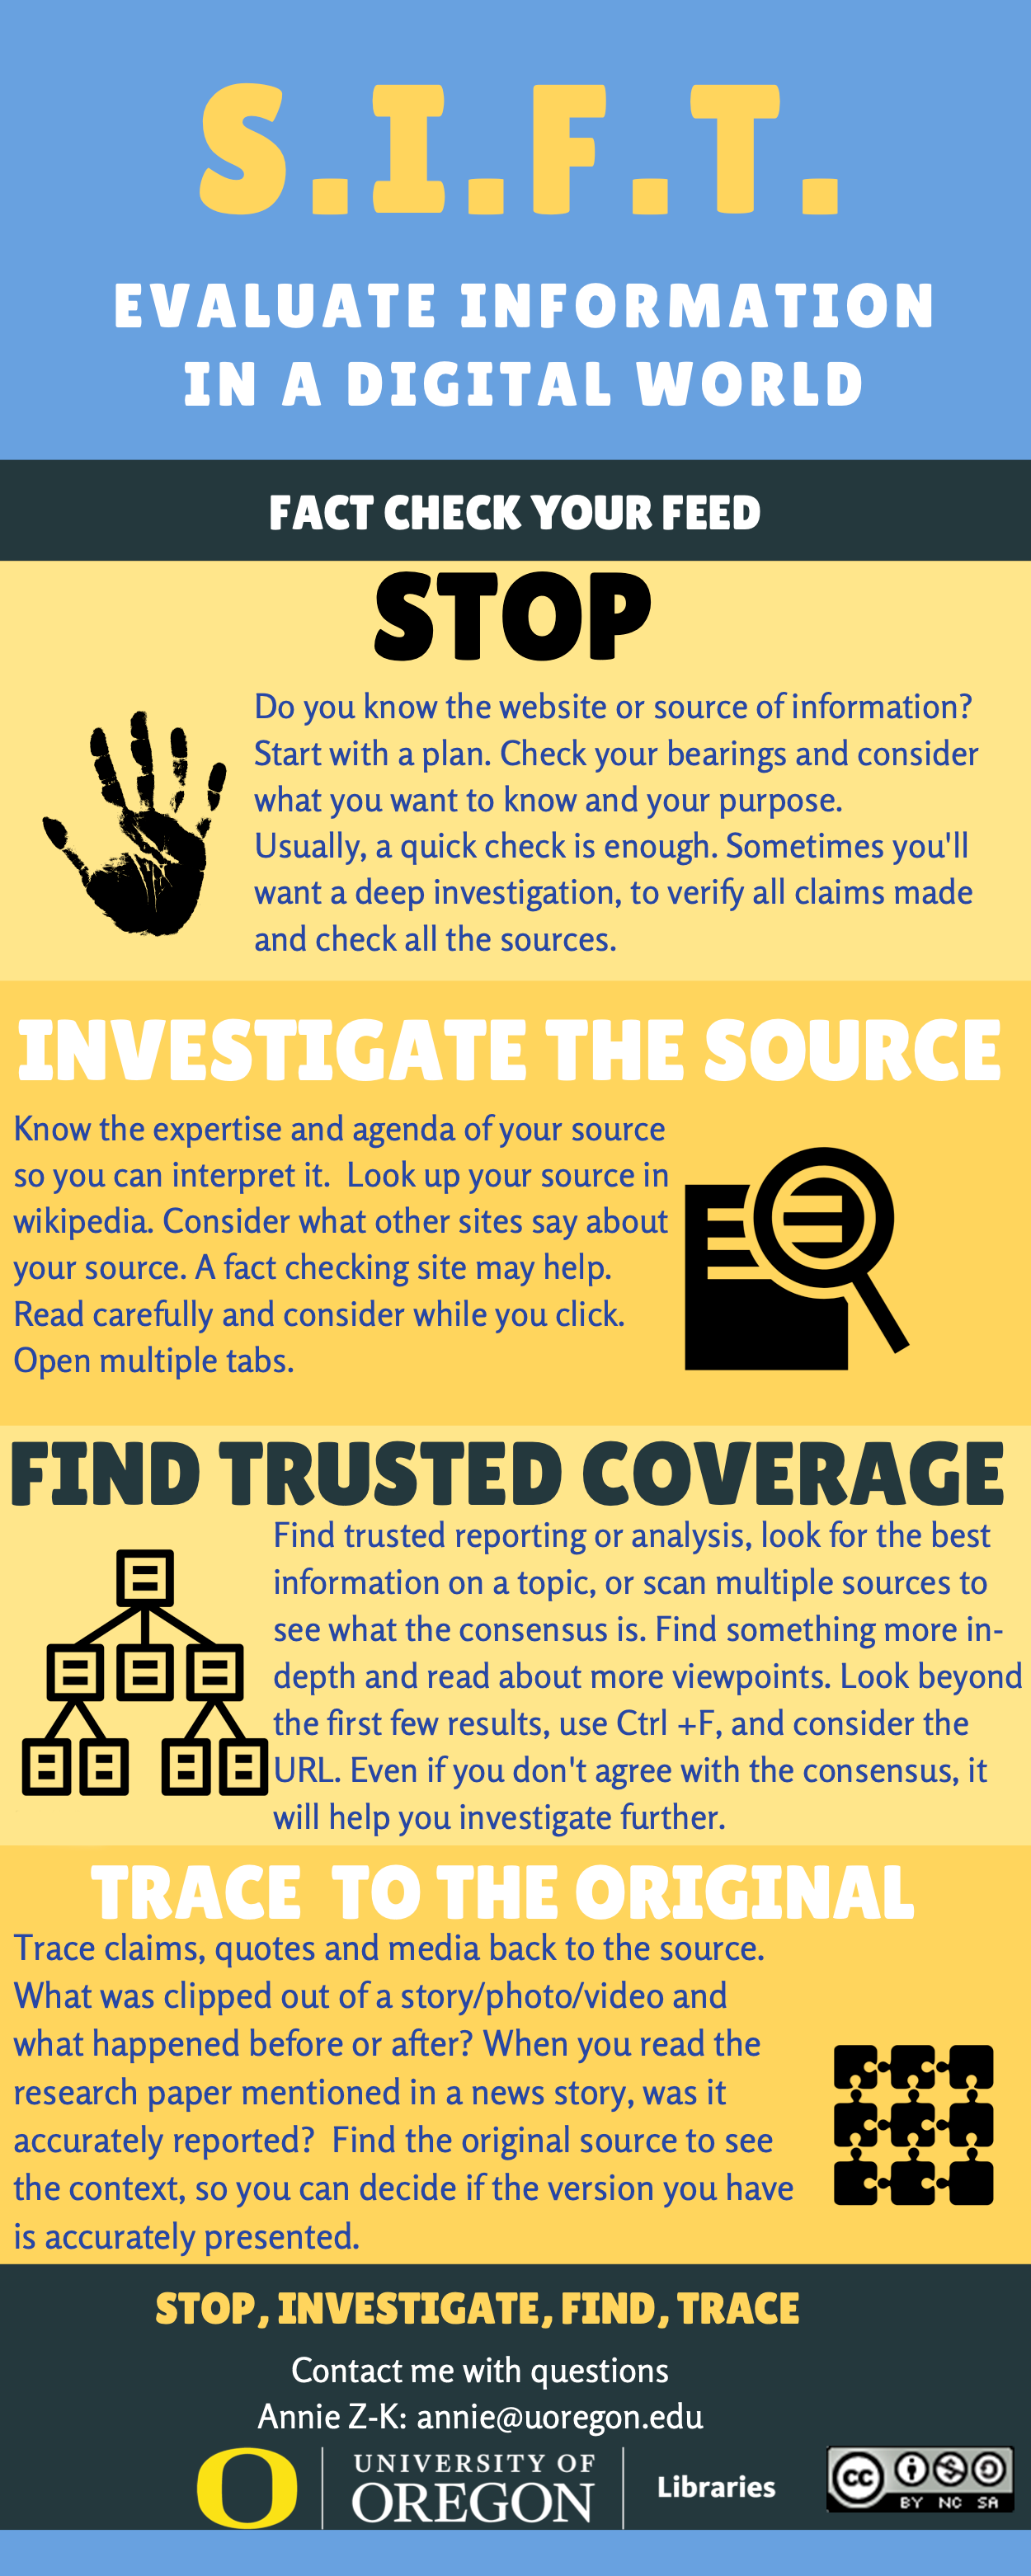 SIFT: Stop, Investigate the Source, Find Trusted Coverage, and Trace to the Original